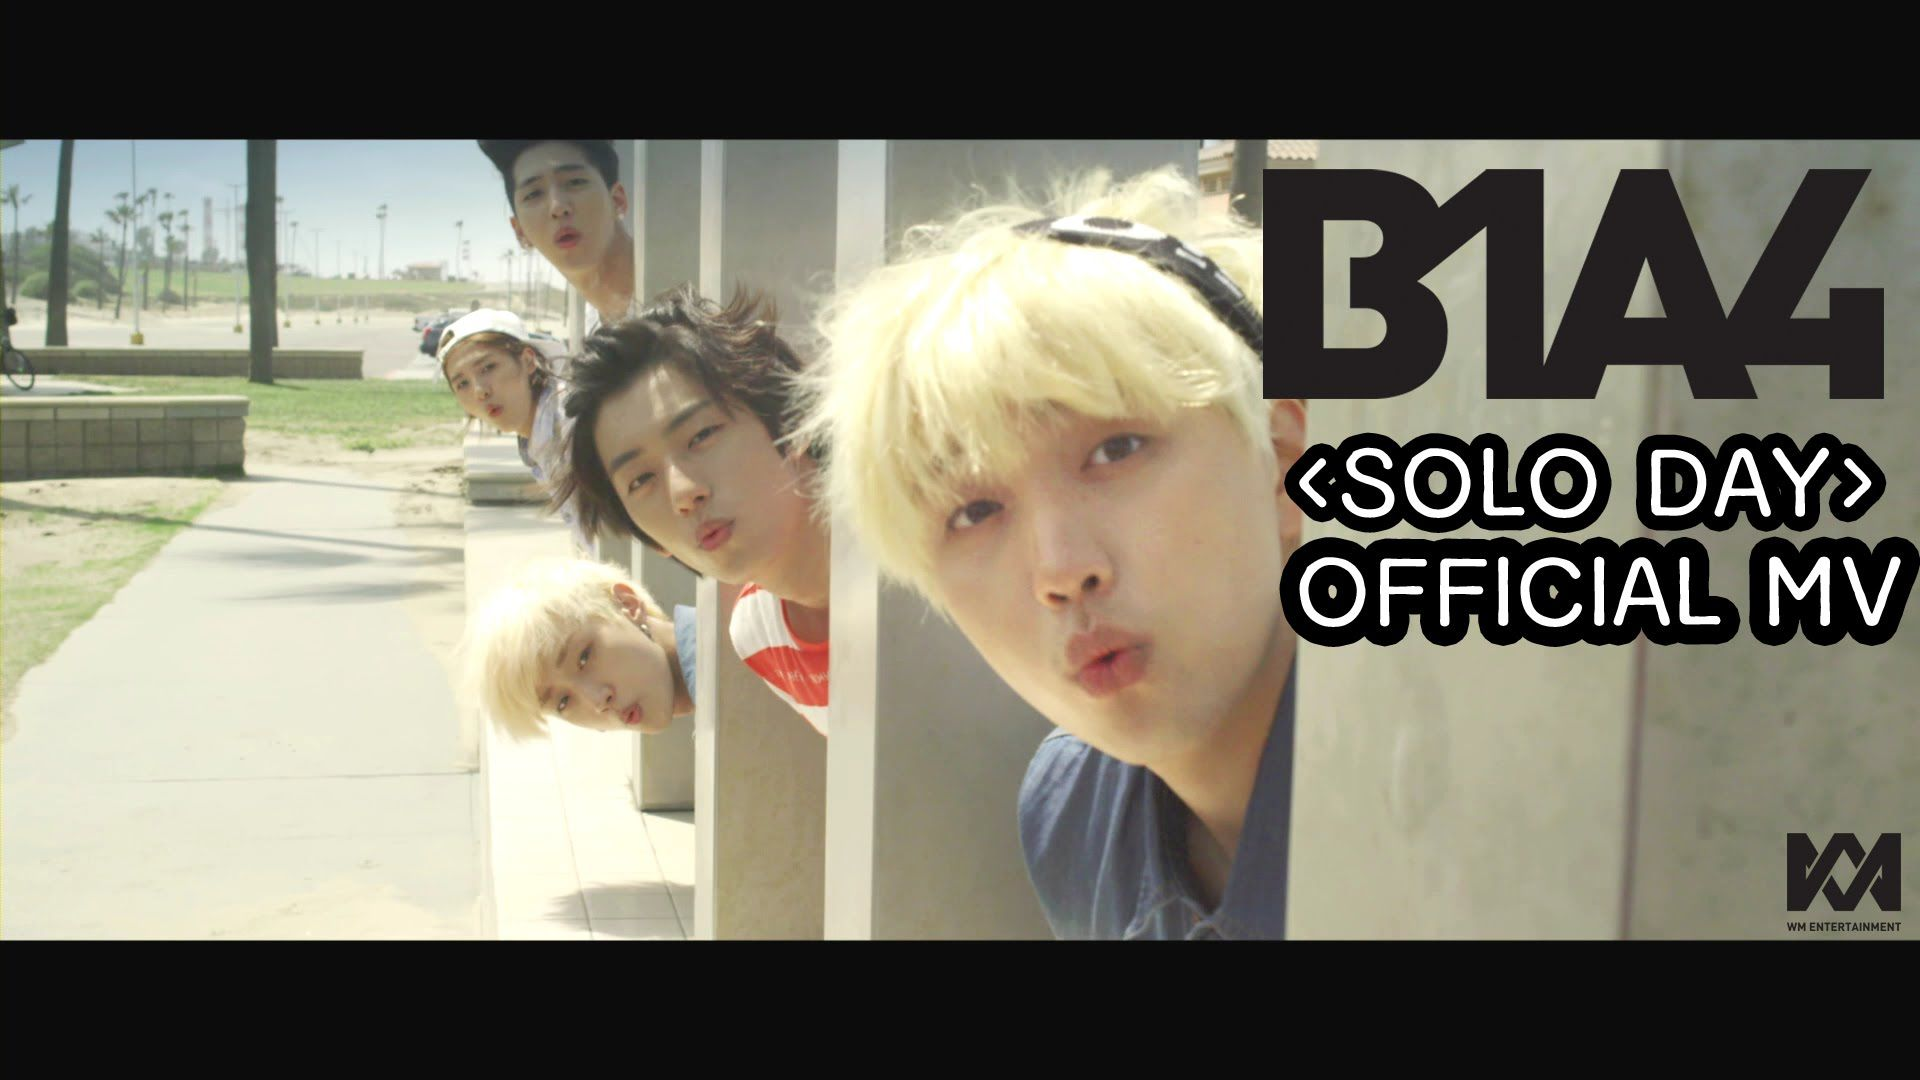 B1A4 - SOLO DAY (Full ver.) #B1A4